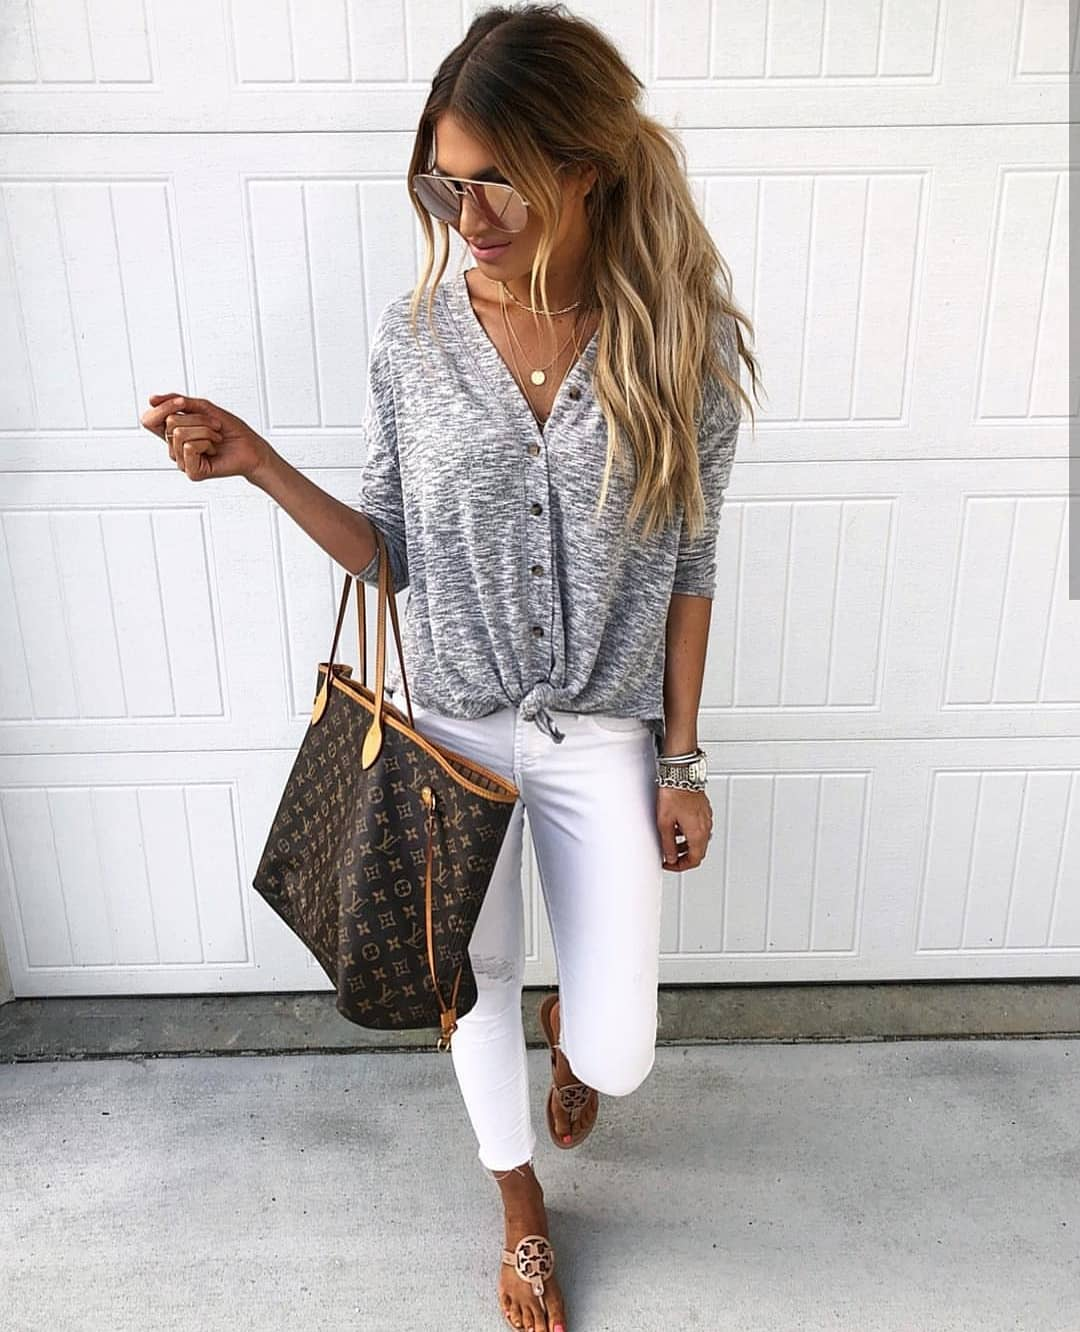 Can You Wear Grey Cardigan With White Jeans This Summer 2019